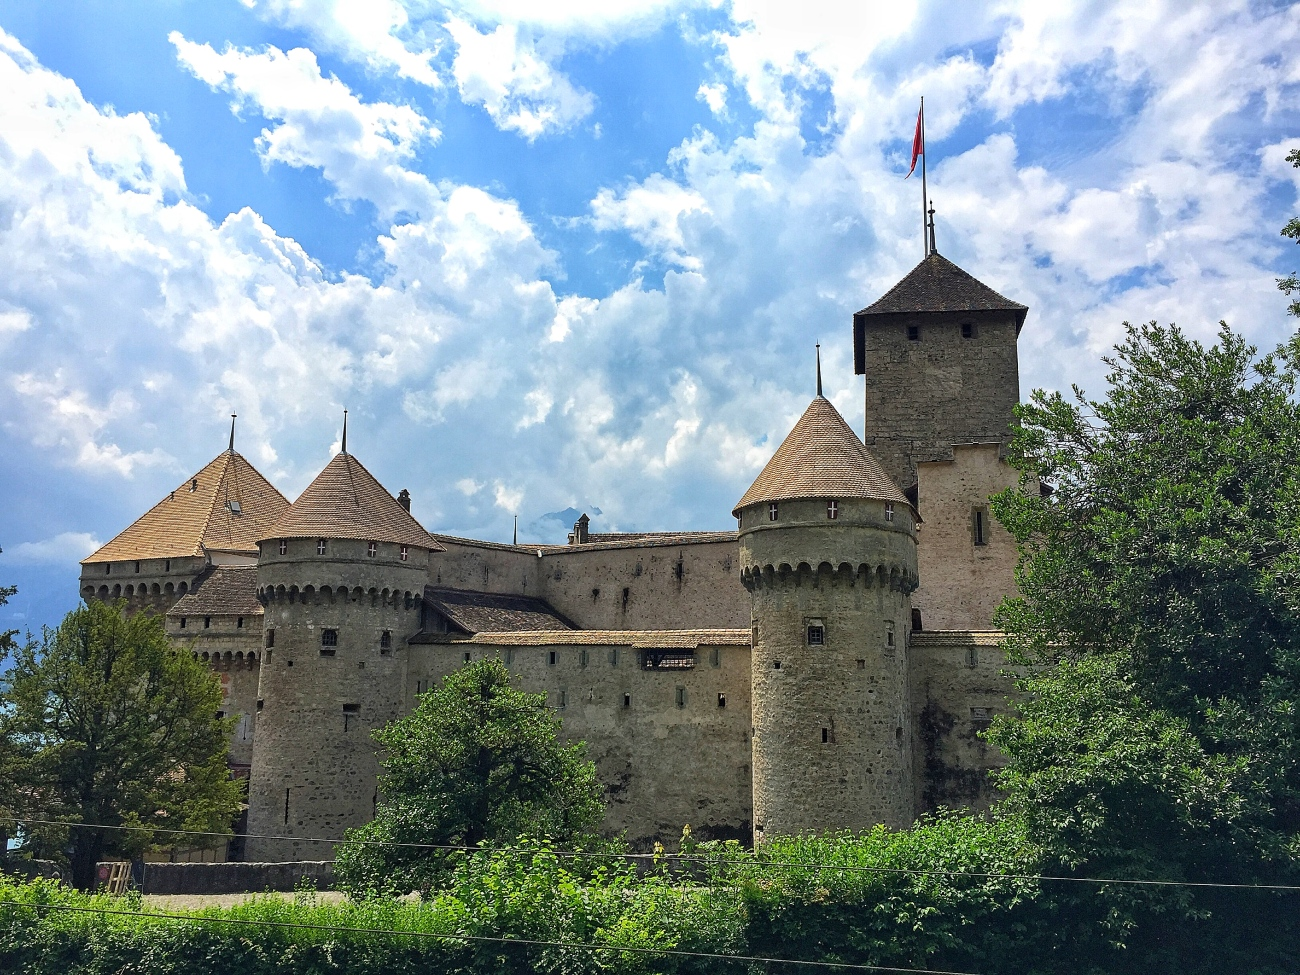 Chateau de Chillon - The Most Visited Castle in the Country